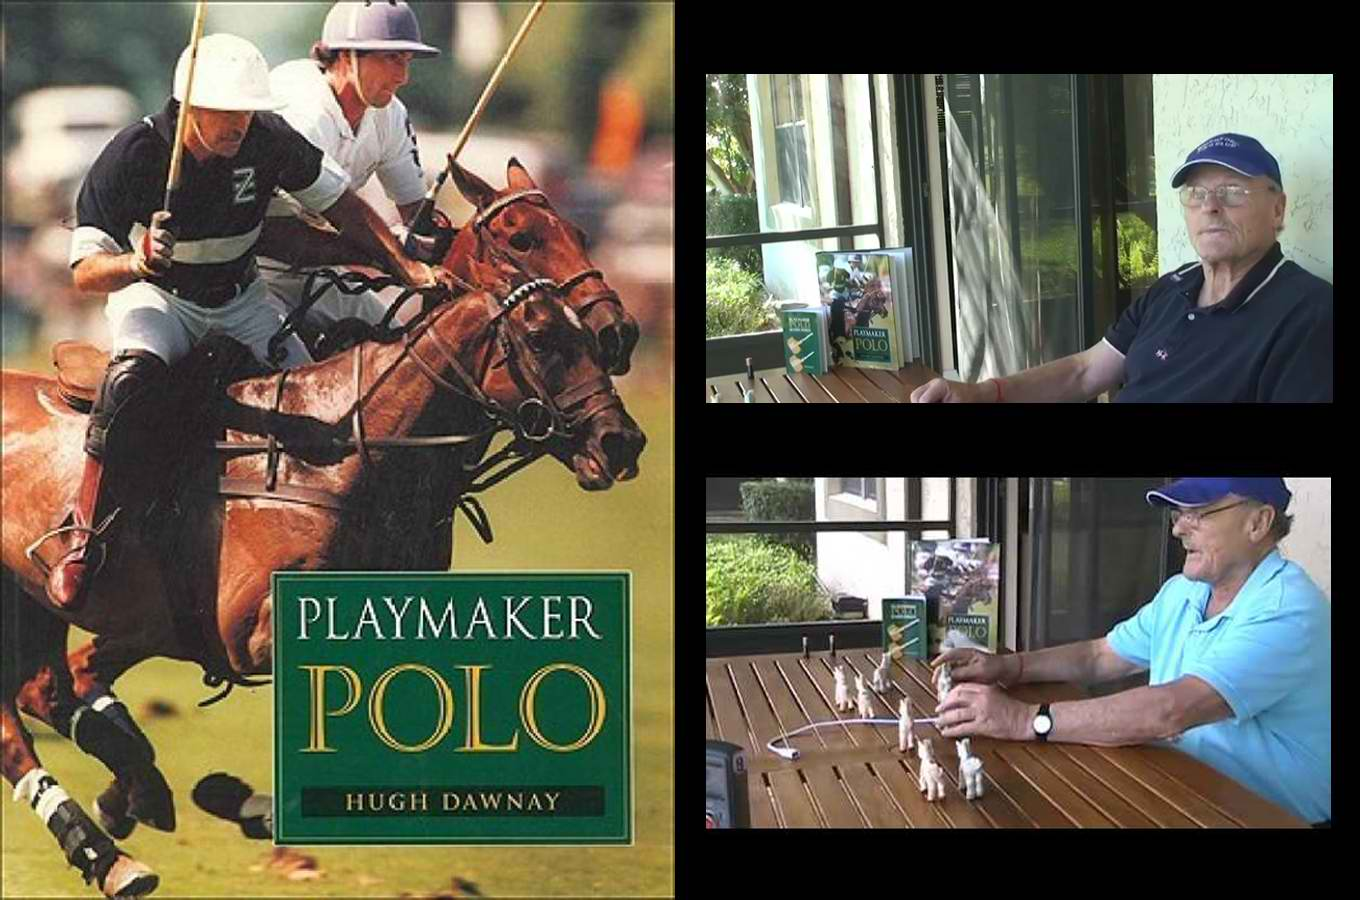 Playmaker Polo by Hugh Dawnay